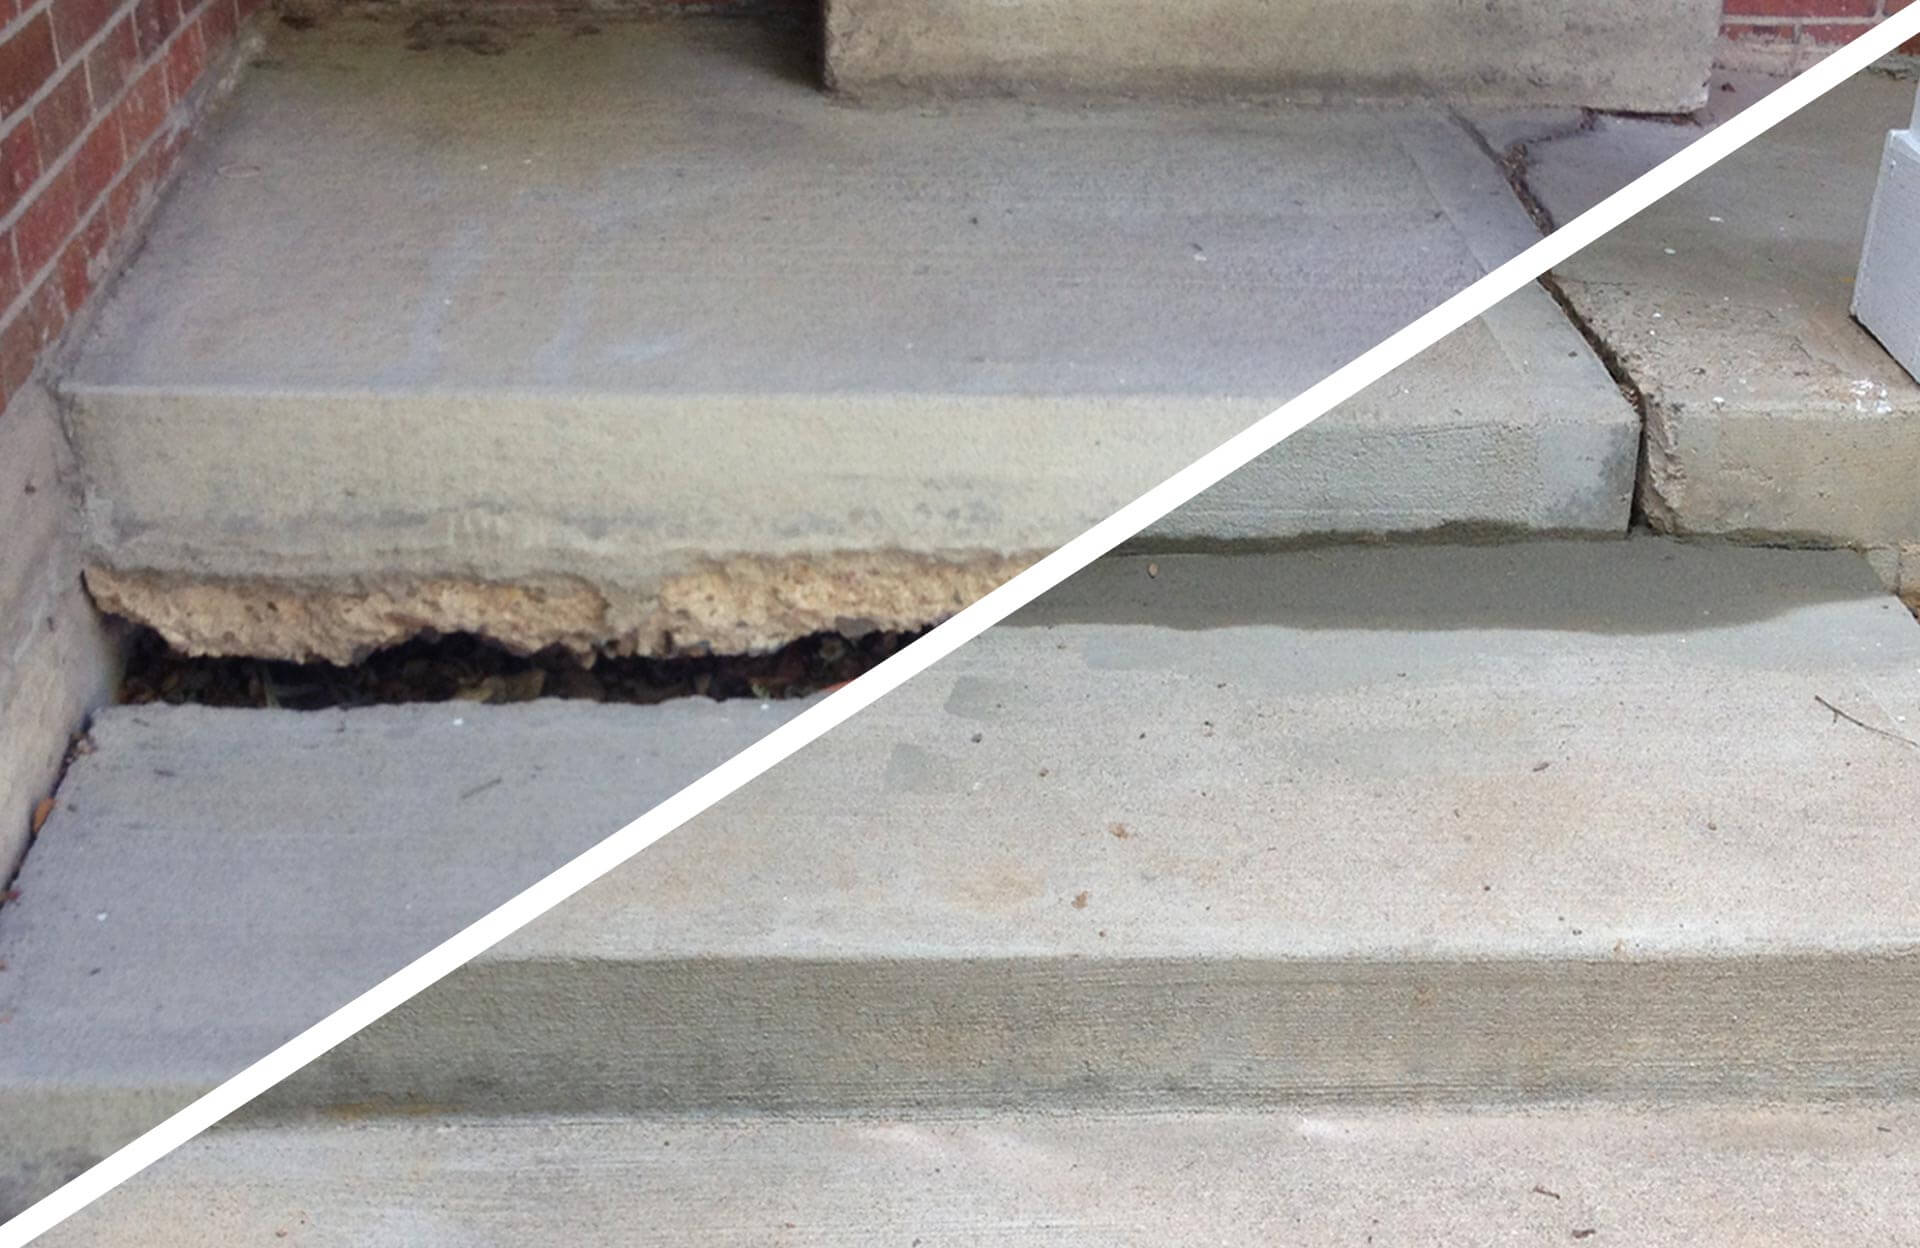 Concrete Repair-San Diego Custom Concrete Pros & Concrete Repair Services